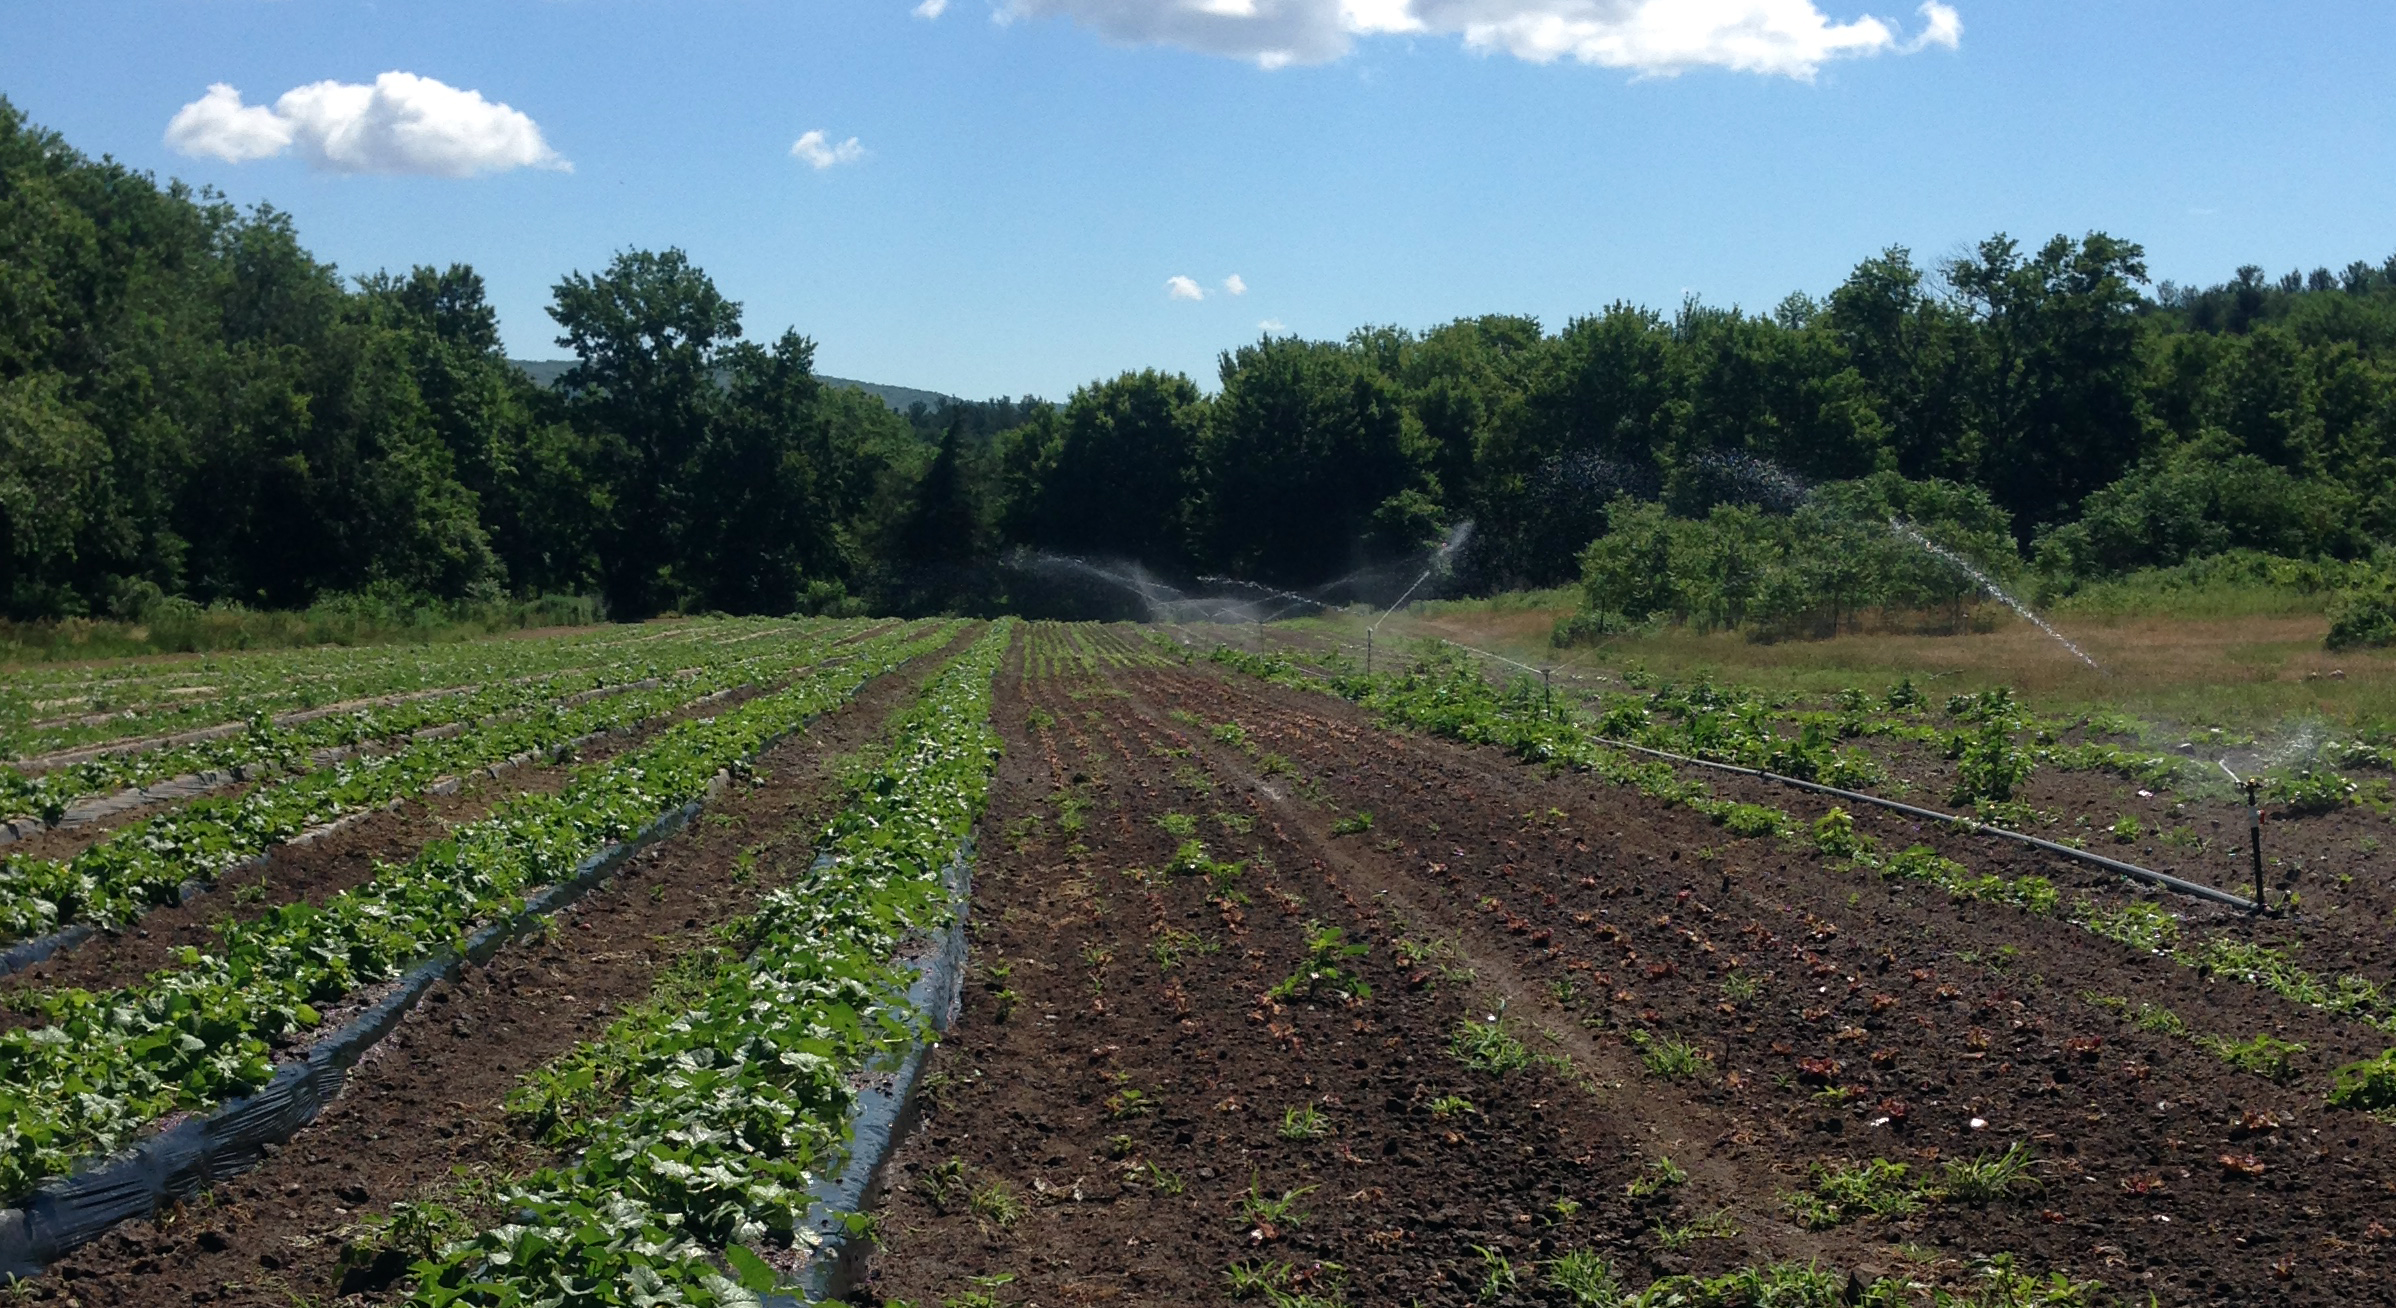 Keeping the water flowing in the newly-planted lettuce, cukes, zukes, and melons!!